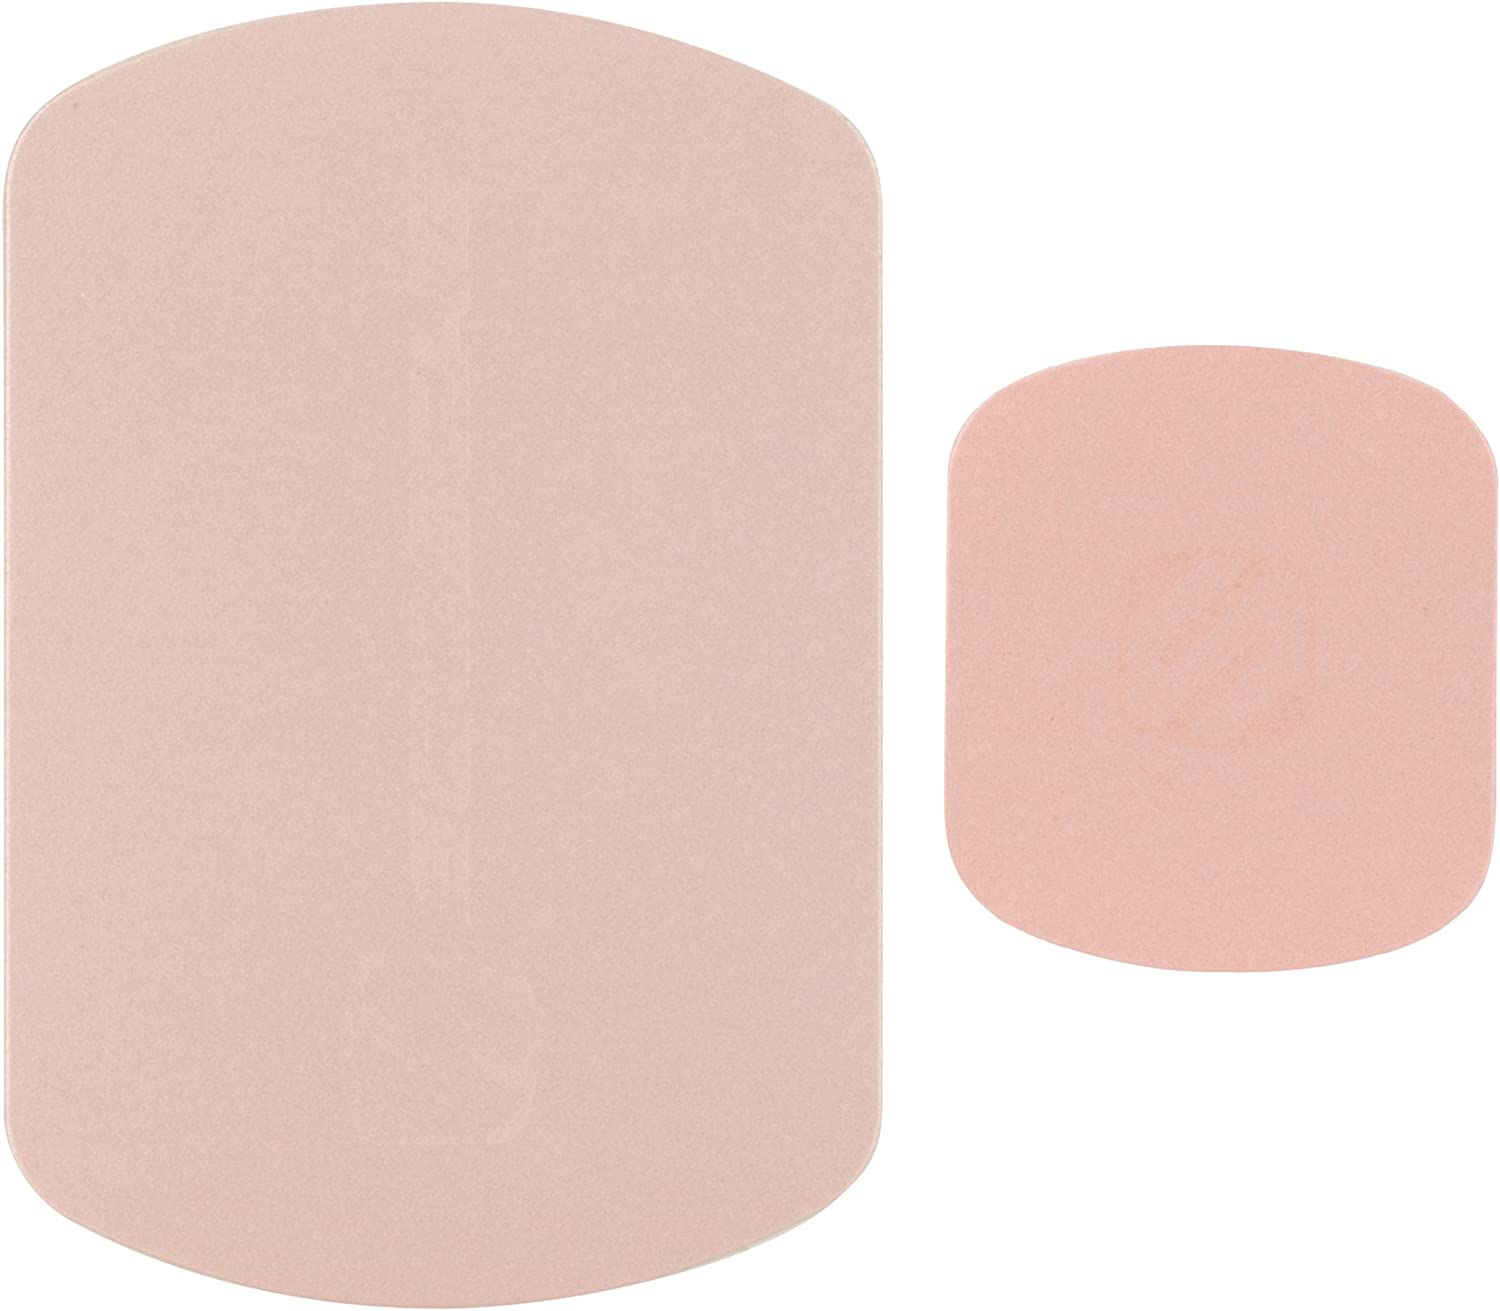 SCOSCHE MAGRKRGI MagicPlate Replacement Plates for MagicMounts, Rose Gold